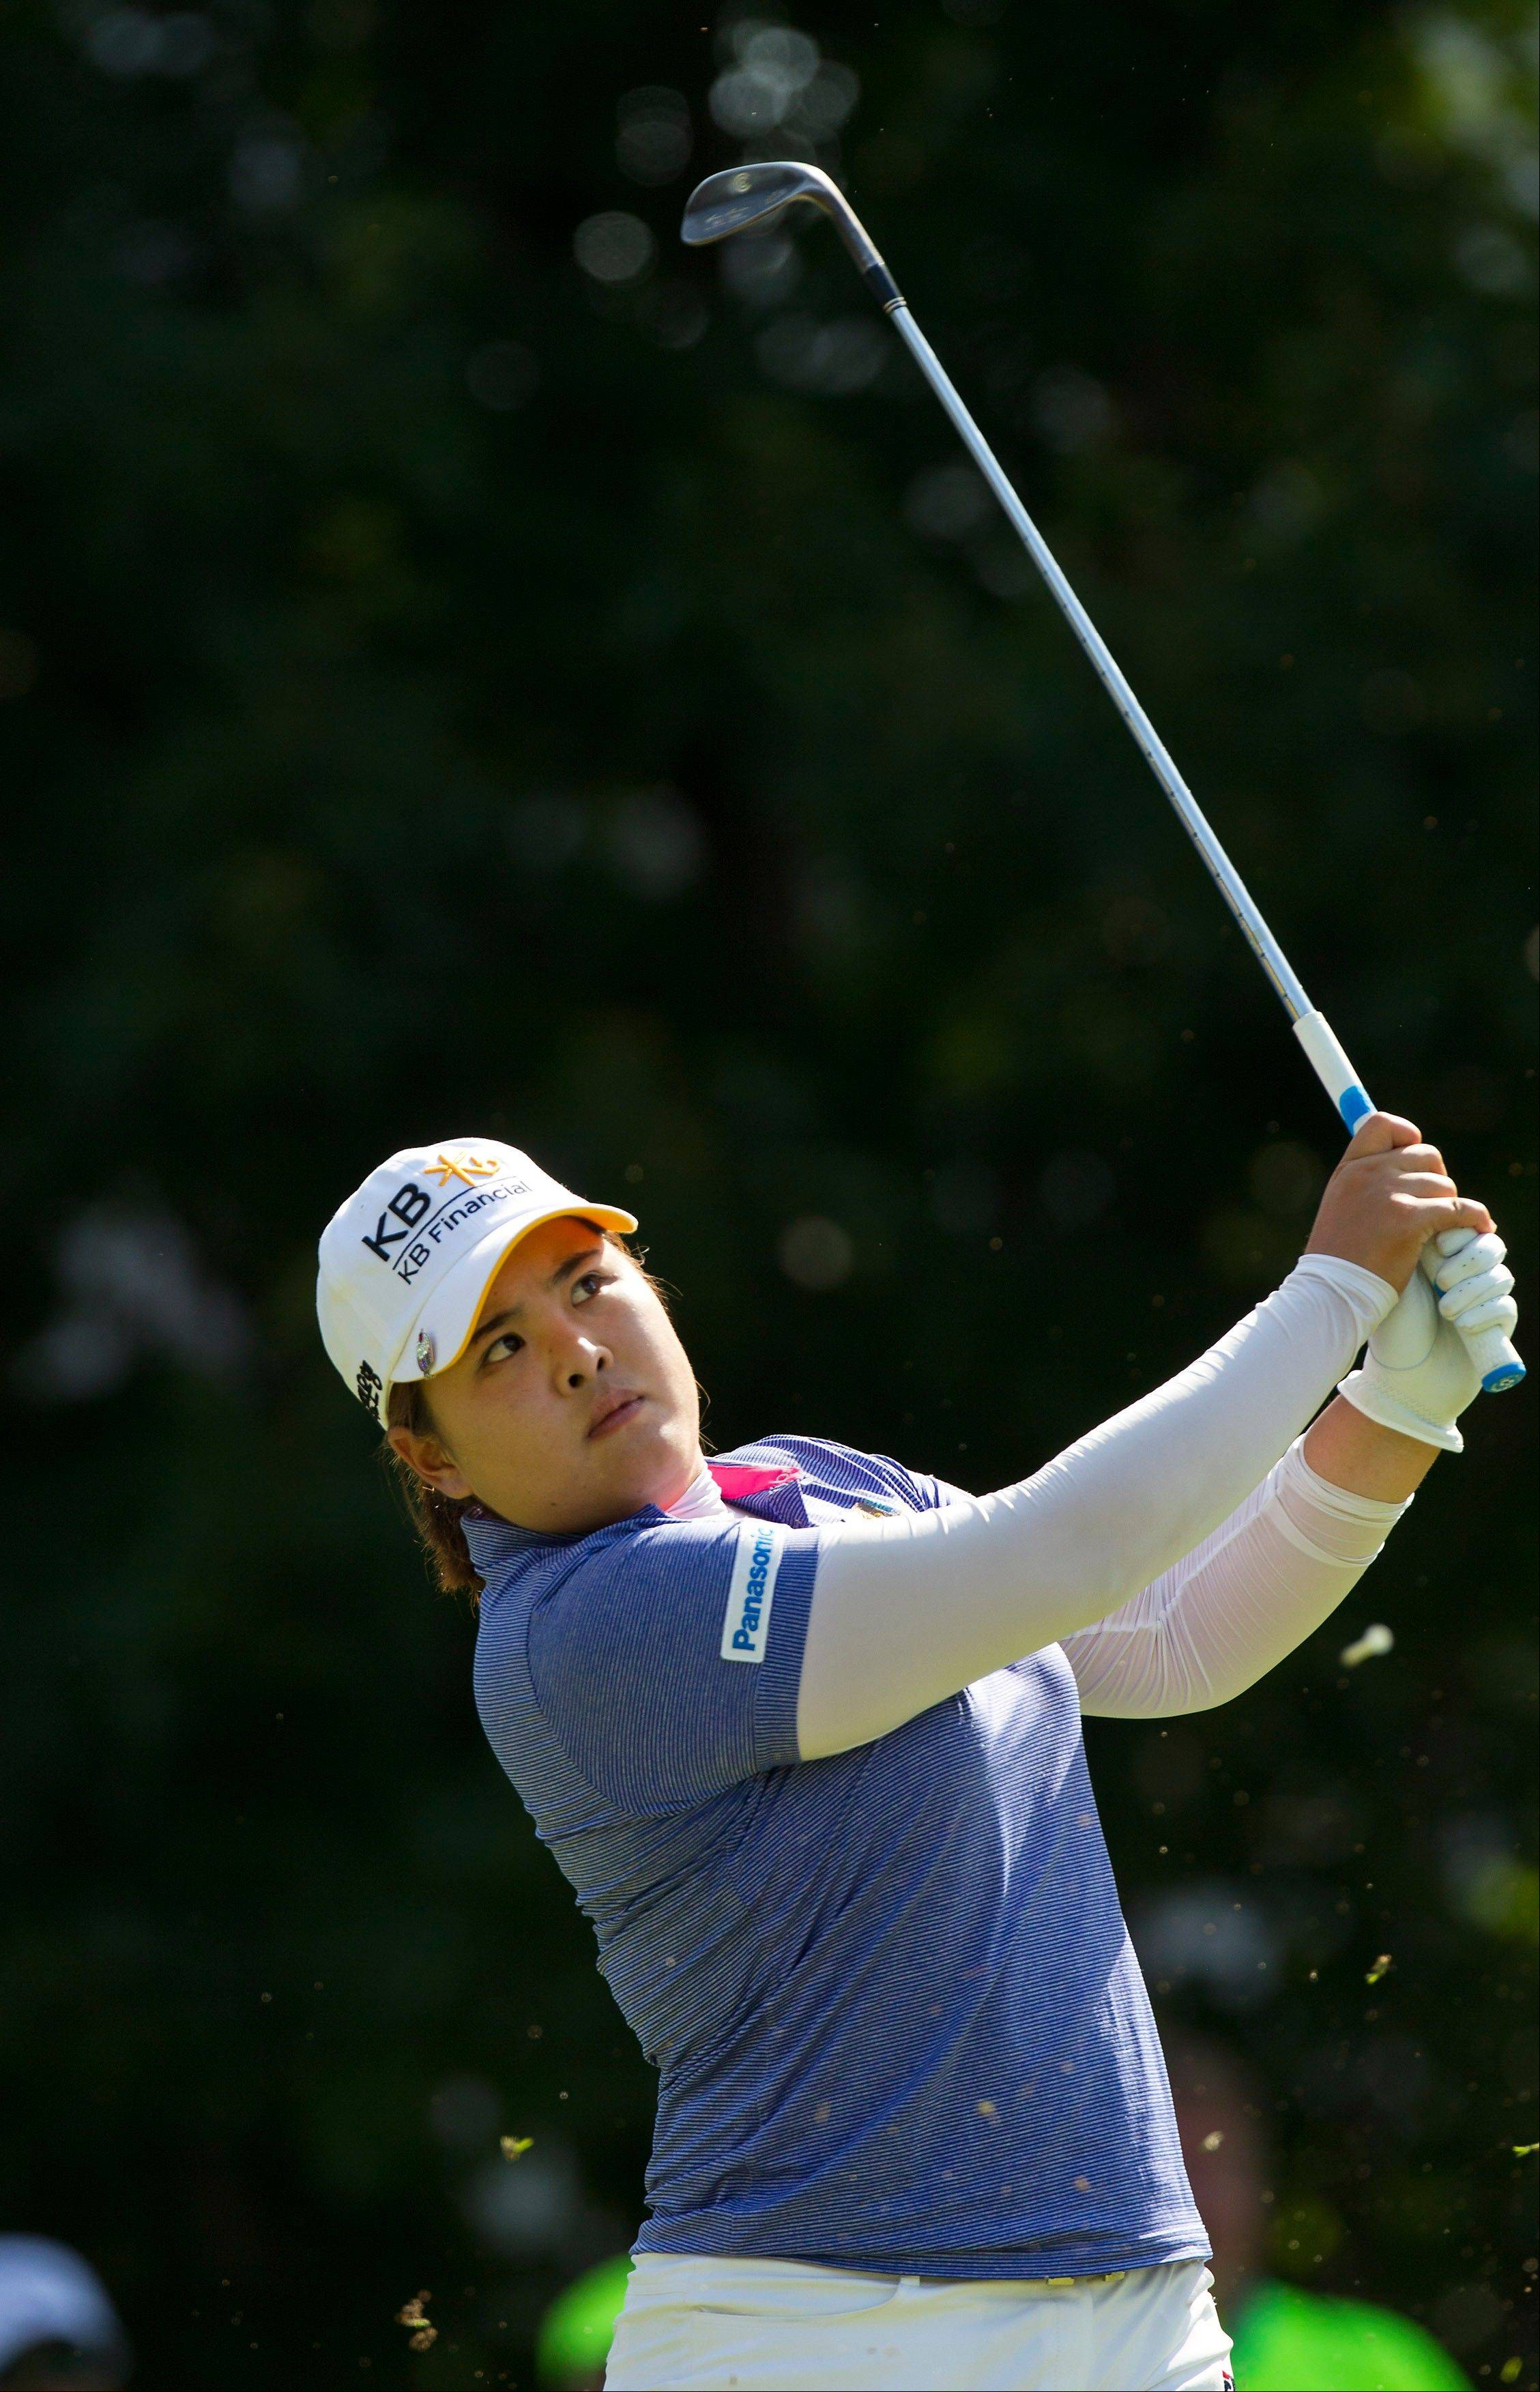 Inbee Park of South Korea will be going for her third straight major at this week's U.S. Women's Open.